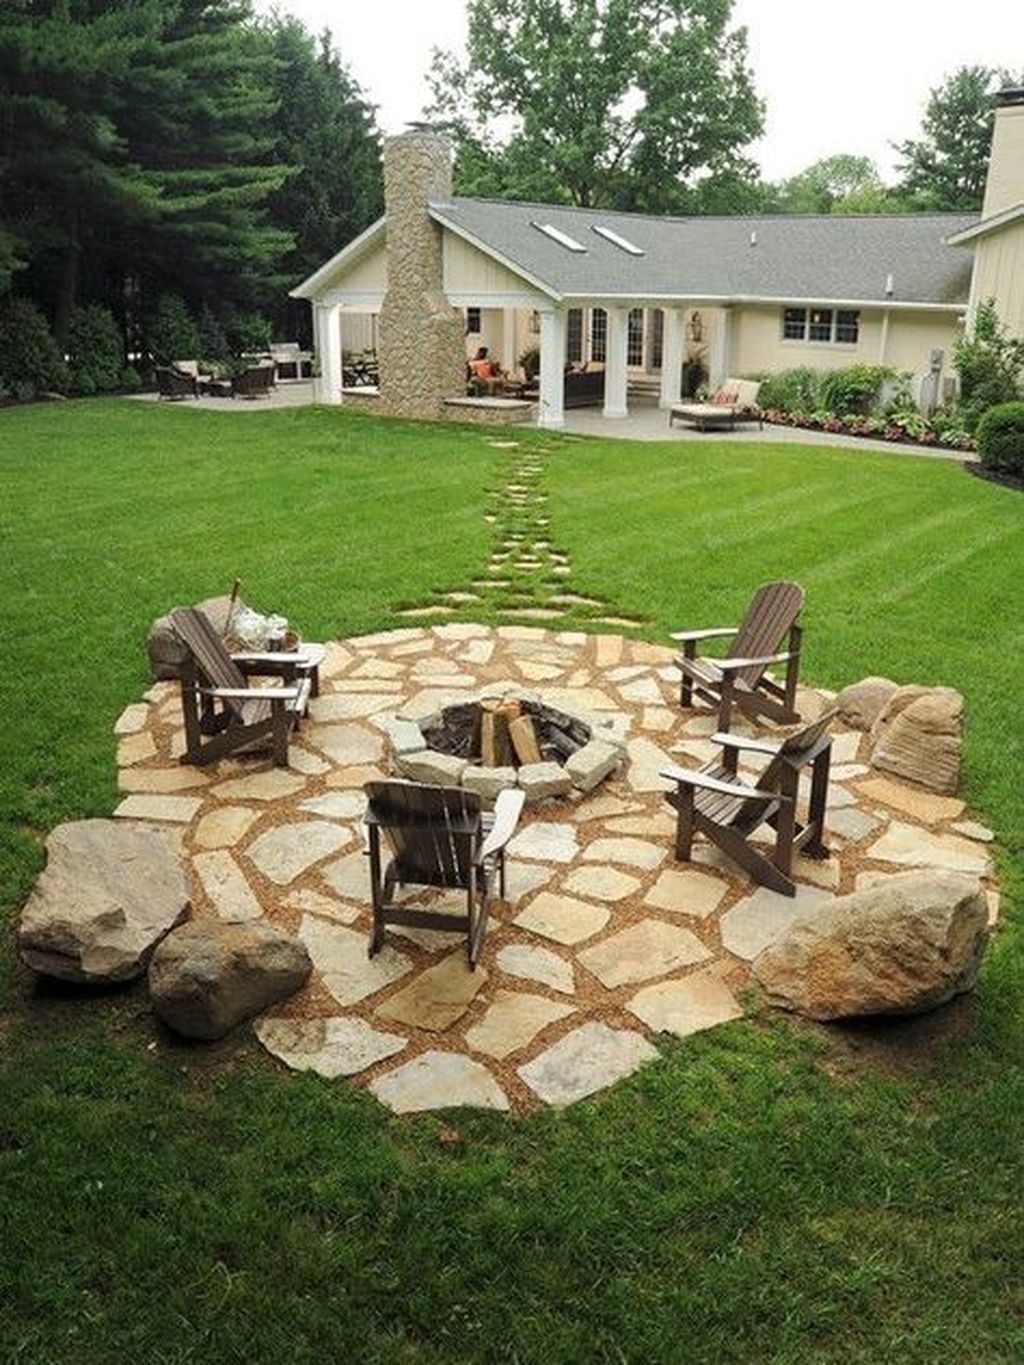 Read Information On Diy Deck Fire Pit Click The Link To Find Out More Viewing Website Is Worth Your Time